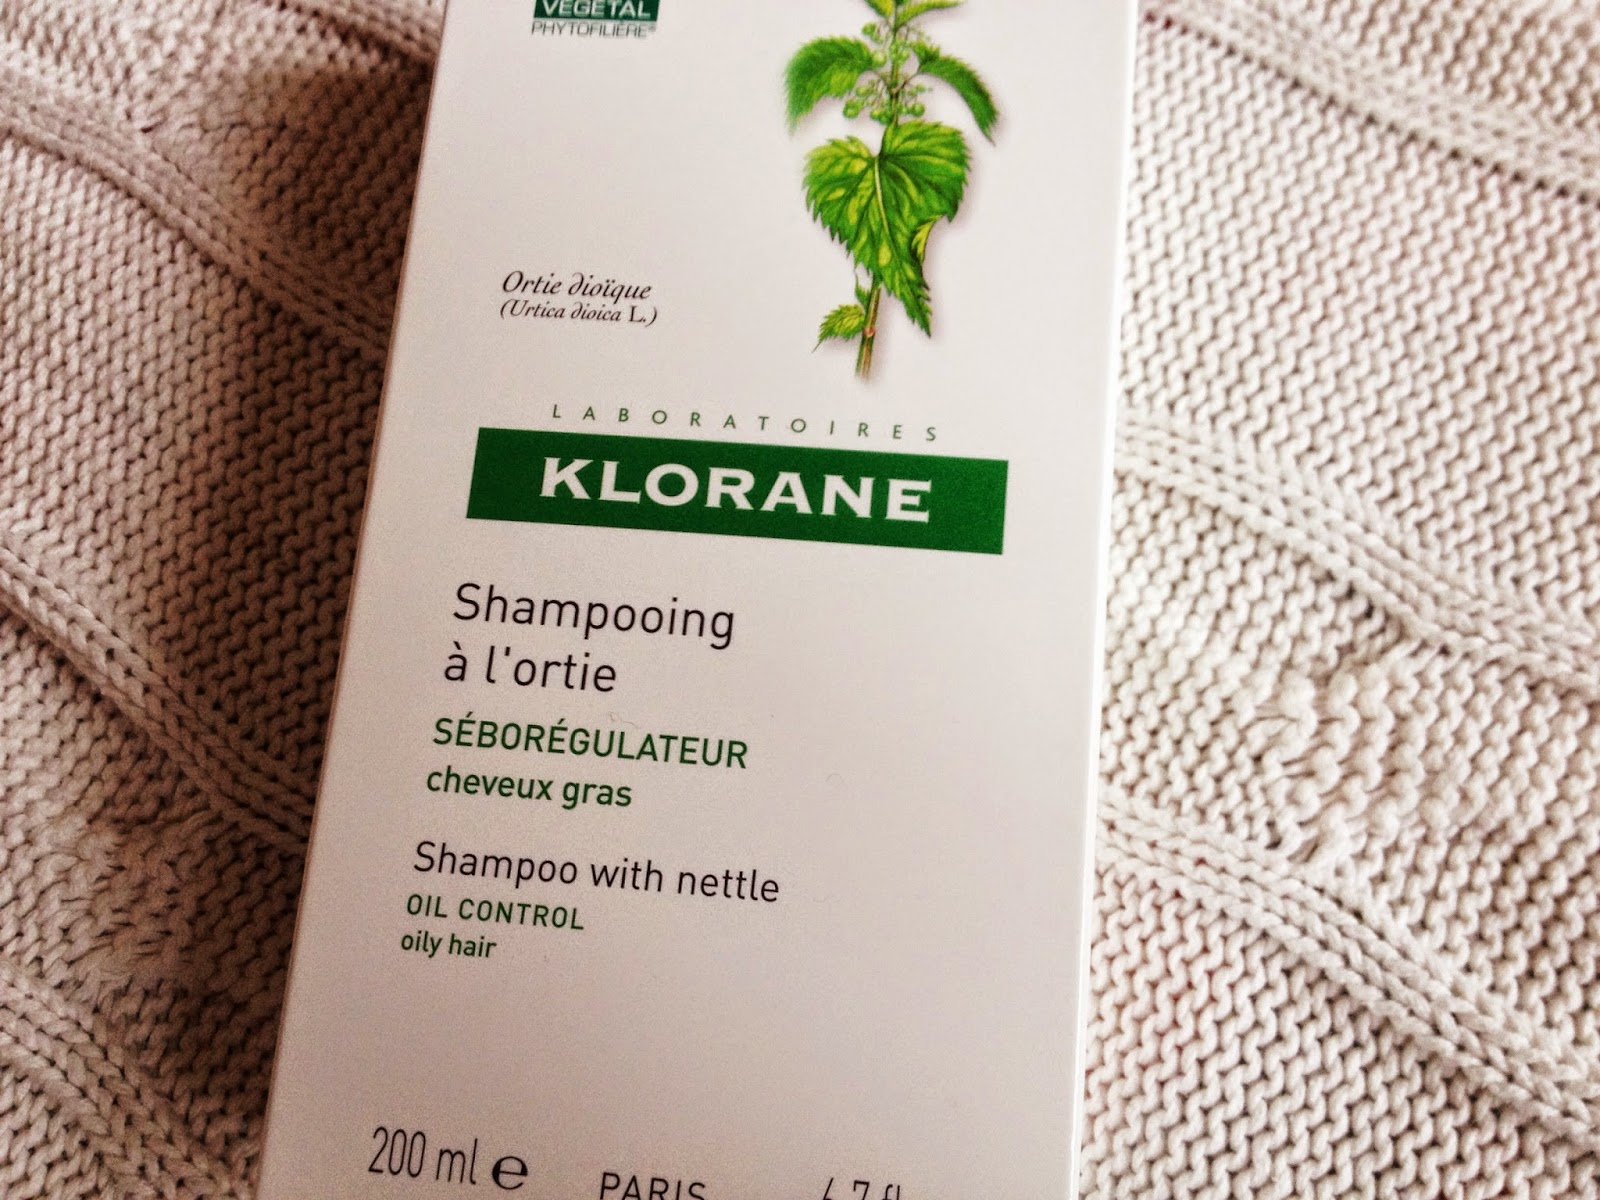 KLORANE Nettle Shampoo, beauty blog, shampoo for oily hair, KLORANE shampoo, eco friendly shampoo